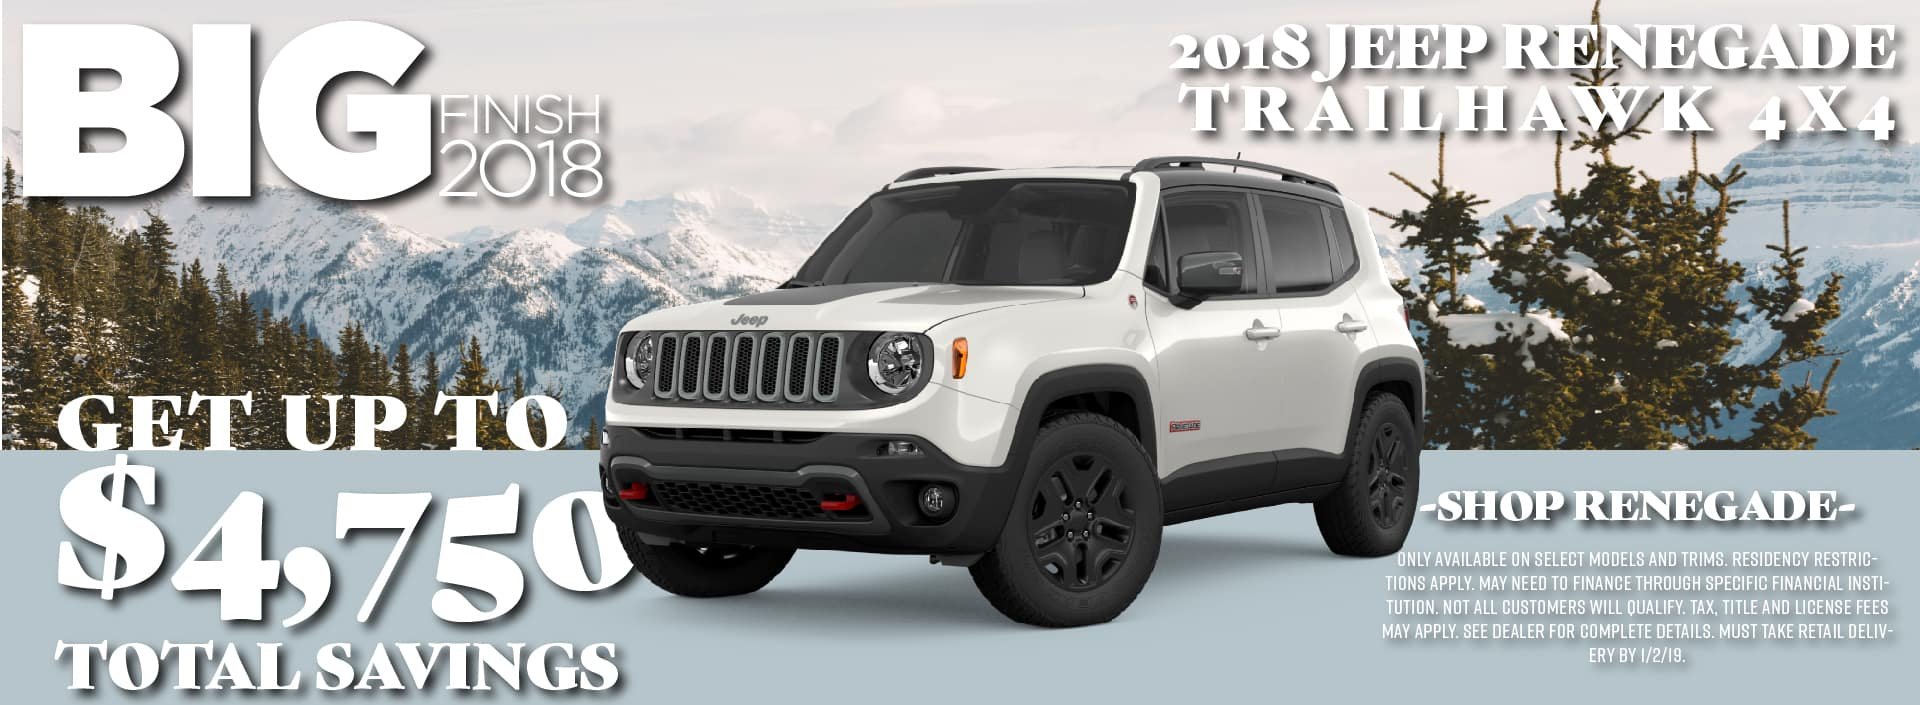 Pollard Jeep L Boulder By Thornton Denver Colorado New Used Old Renegade For Sale See Ad